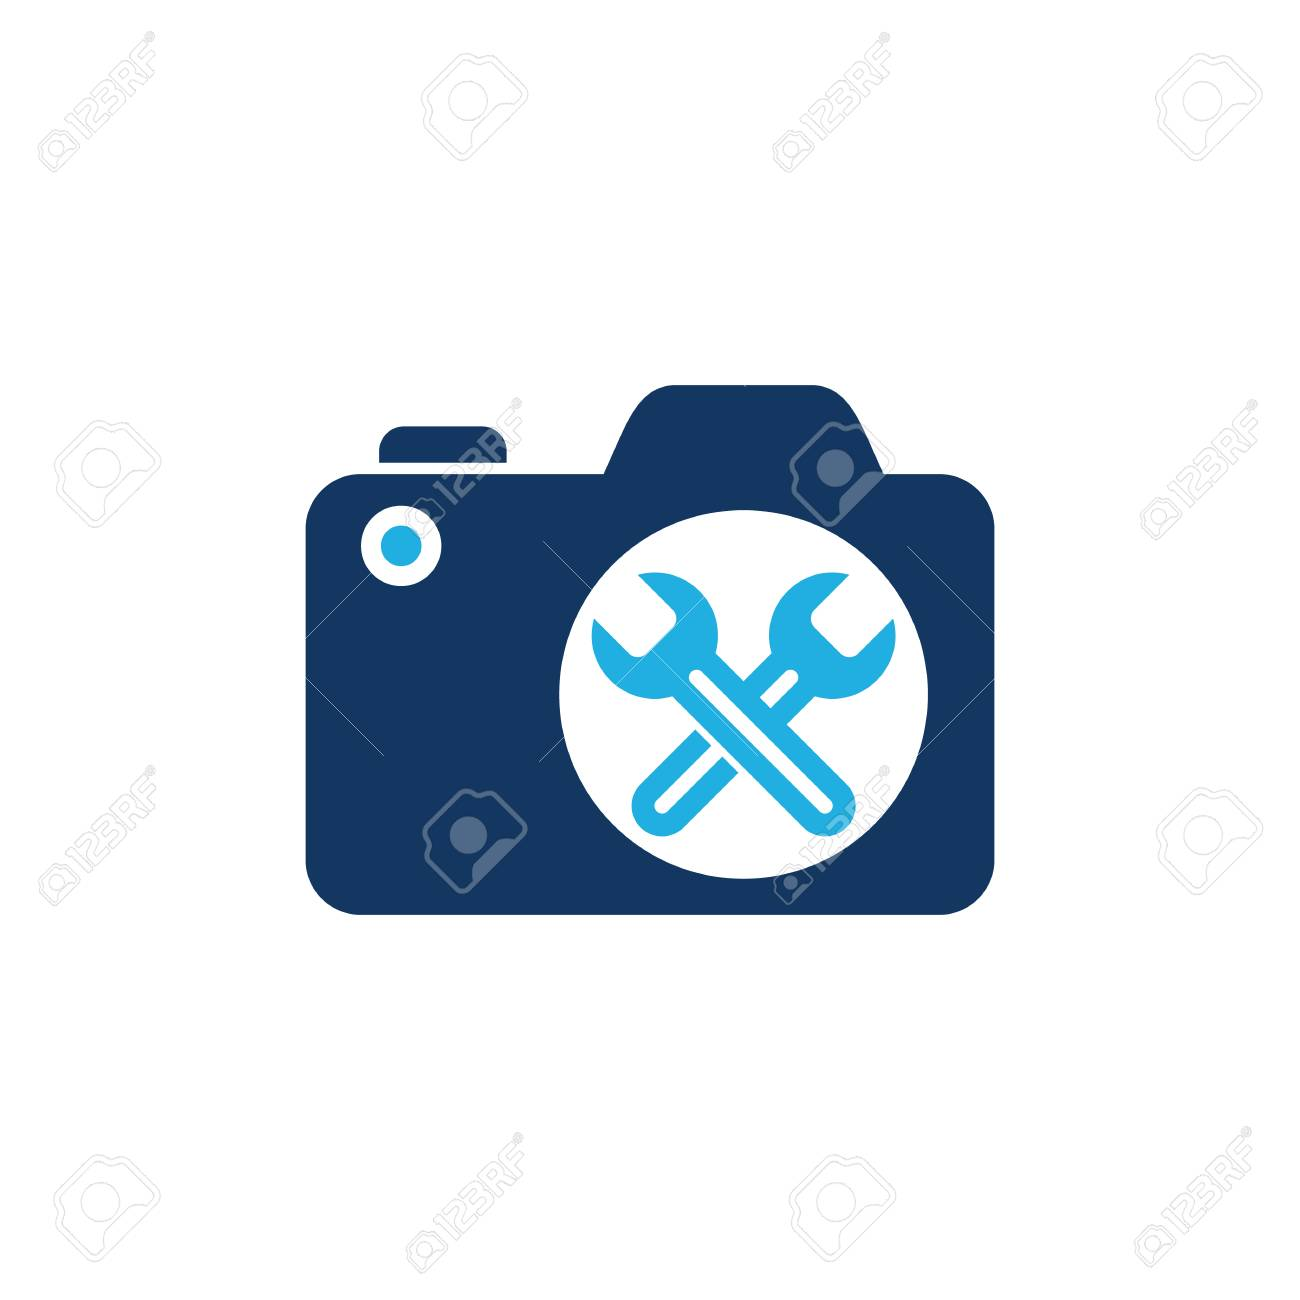 Repair Camera Logo Icon Design Royalty Free Cliparts Vectors And Stock Illustration Image 100971719